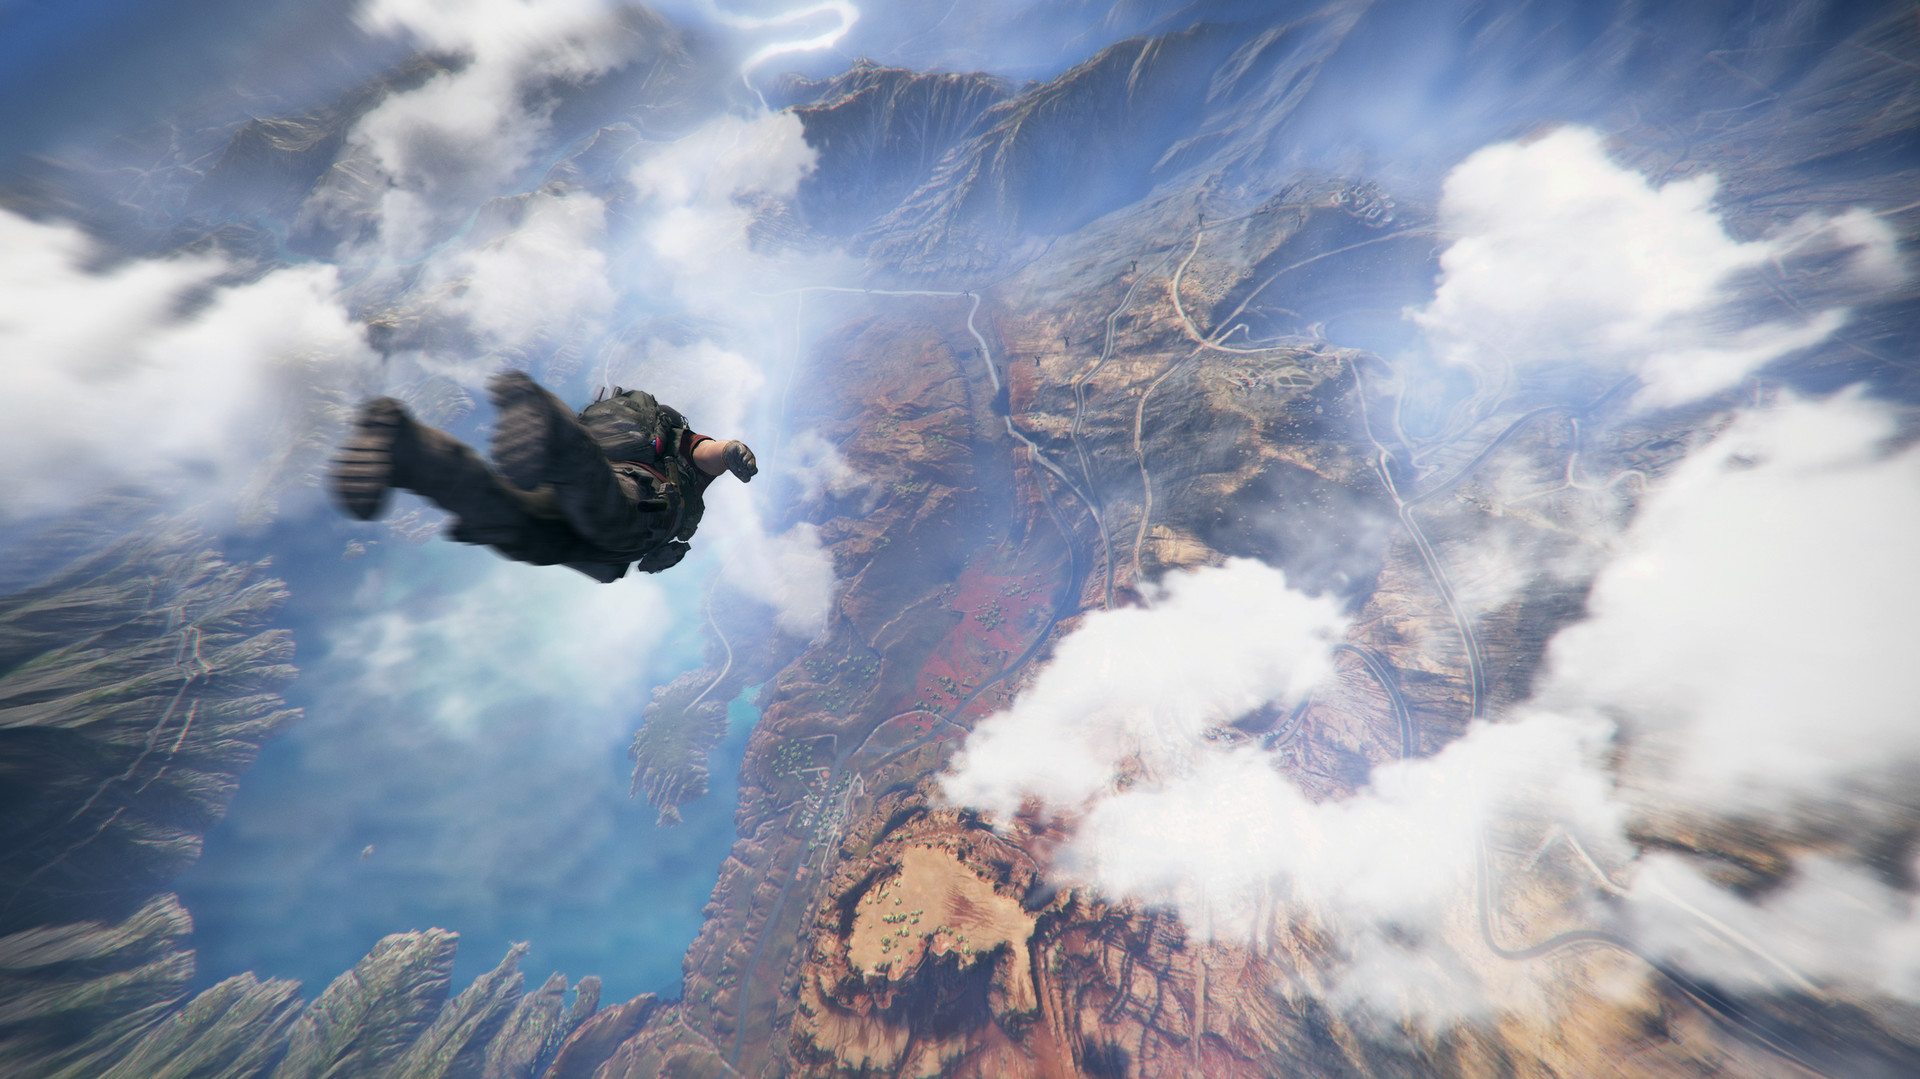 Weekend deals: Falling price on Ghost Recon Wildlands, last call on $219 PS4 screenshot